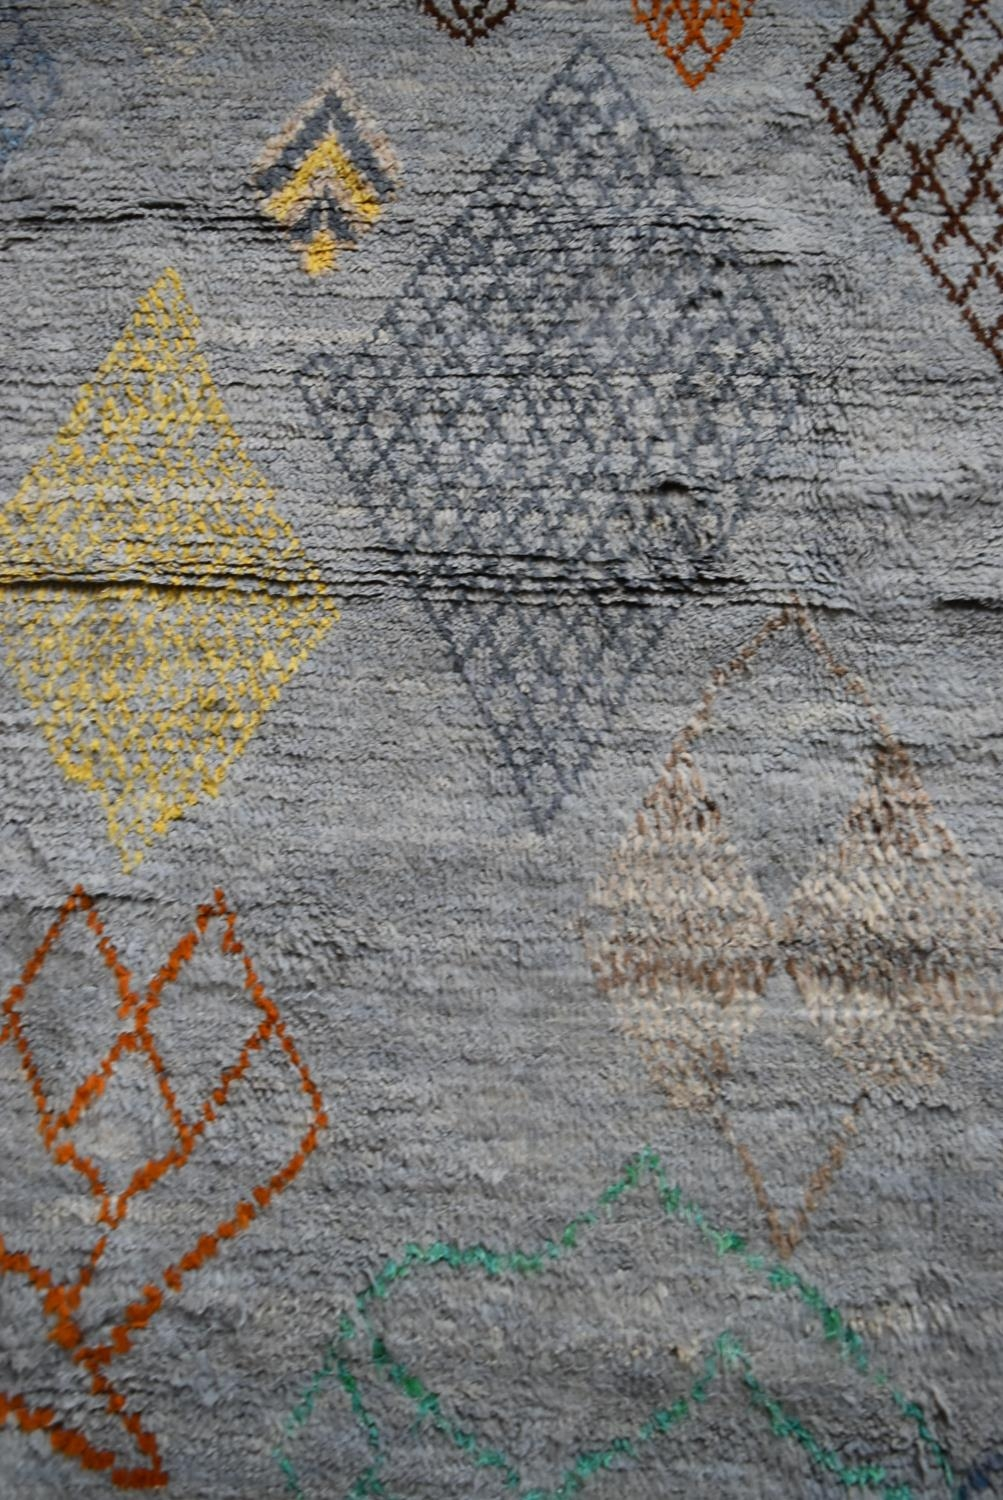 A Moroccan style rug with abstract diamond patterns across a powder blue ground. L.245xW.170cm - Image 2 of 4